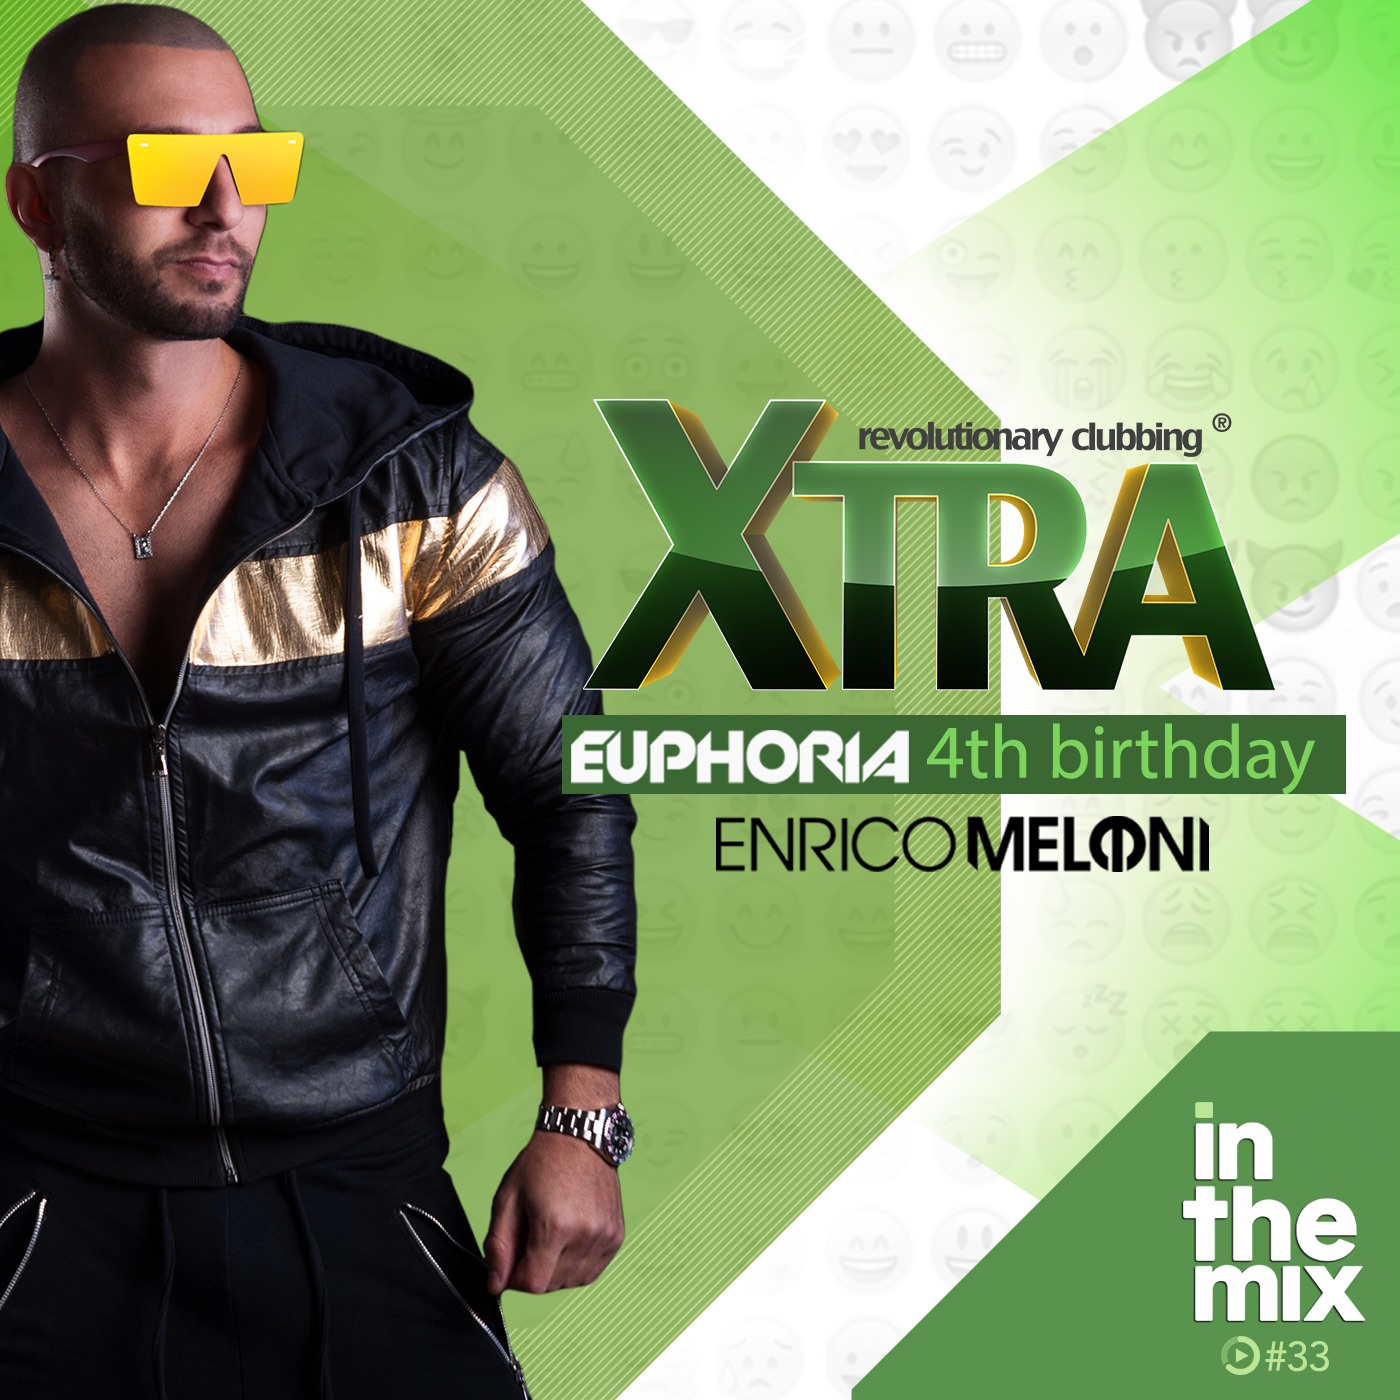 ENRICO MELONI - XTRA EUPHORIA (In The Mix #033 2K18)